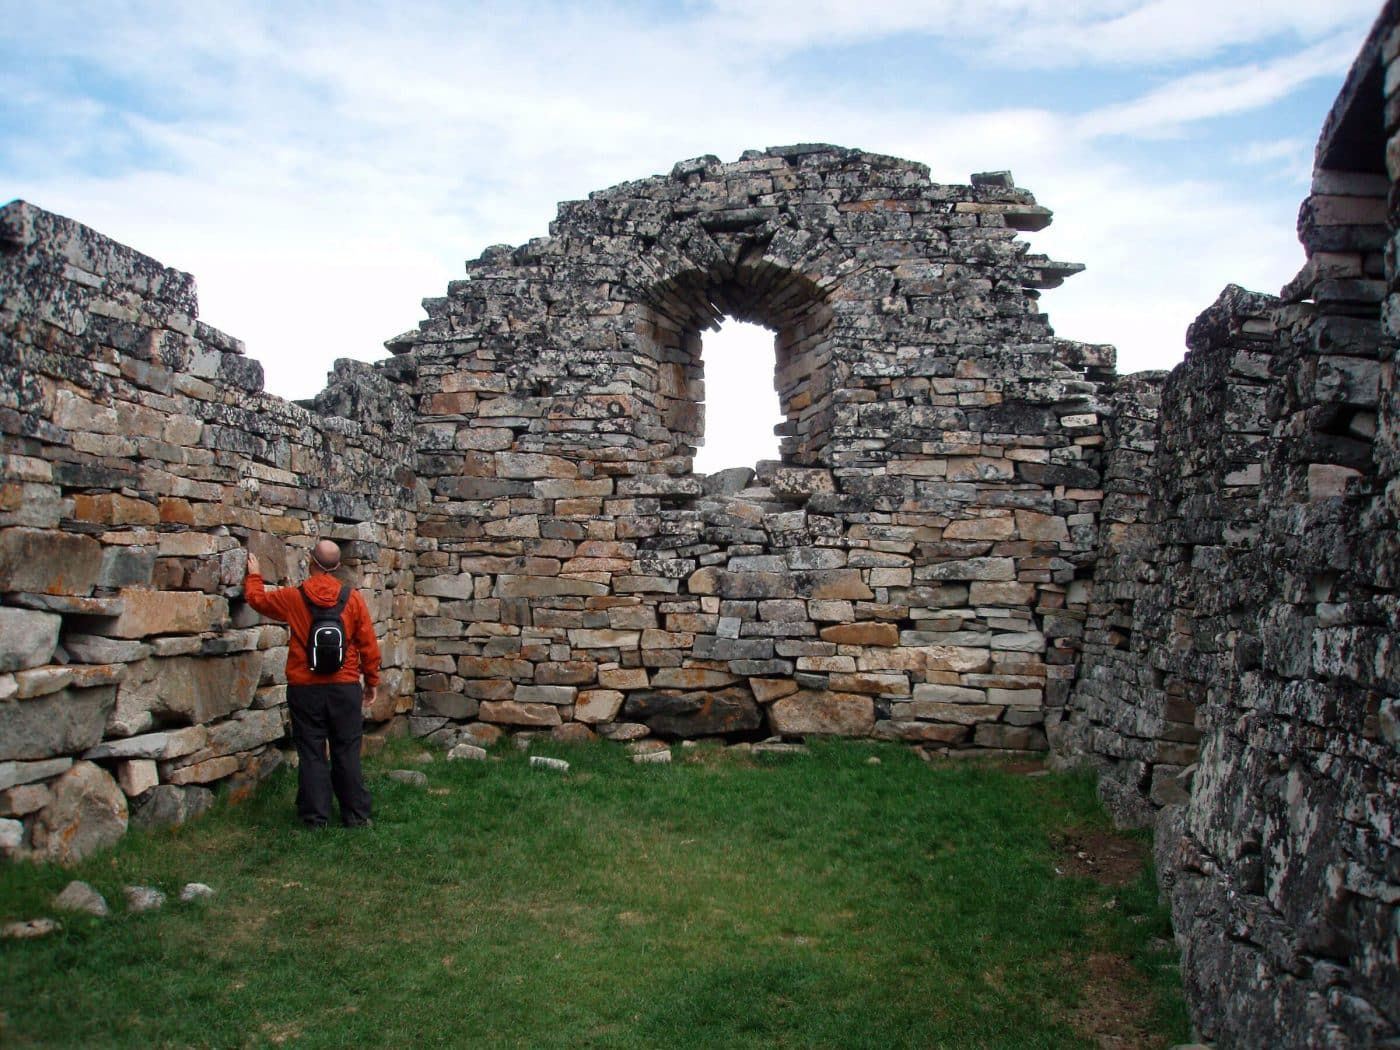 A view inside the Hvalsey church ruin in South Greenland. By Ella Groedem